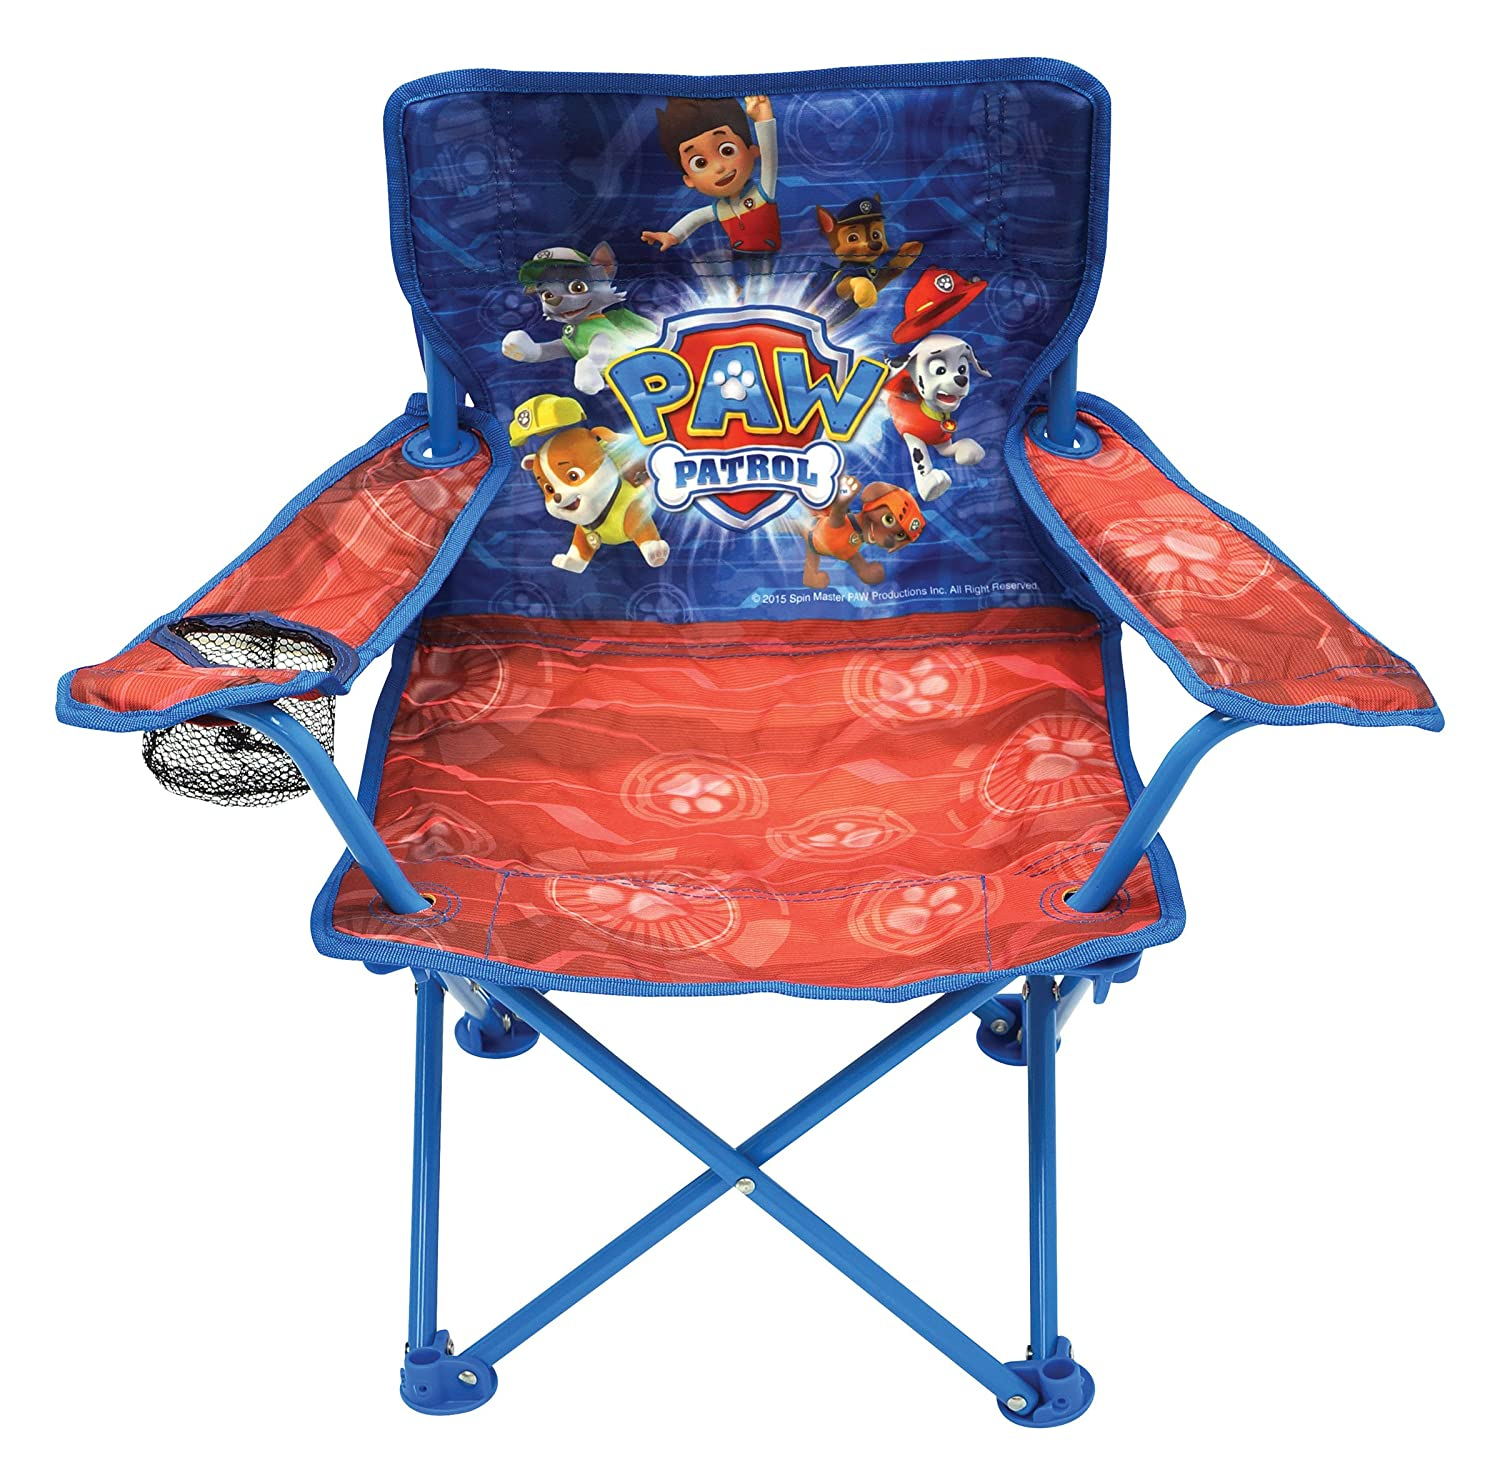 Kids plastic outdoor chairs - 1 24 Of 624 Results For Toys Games Kids Furniture D Cor Storage Outdoor Furniture